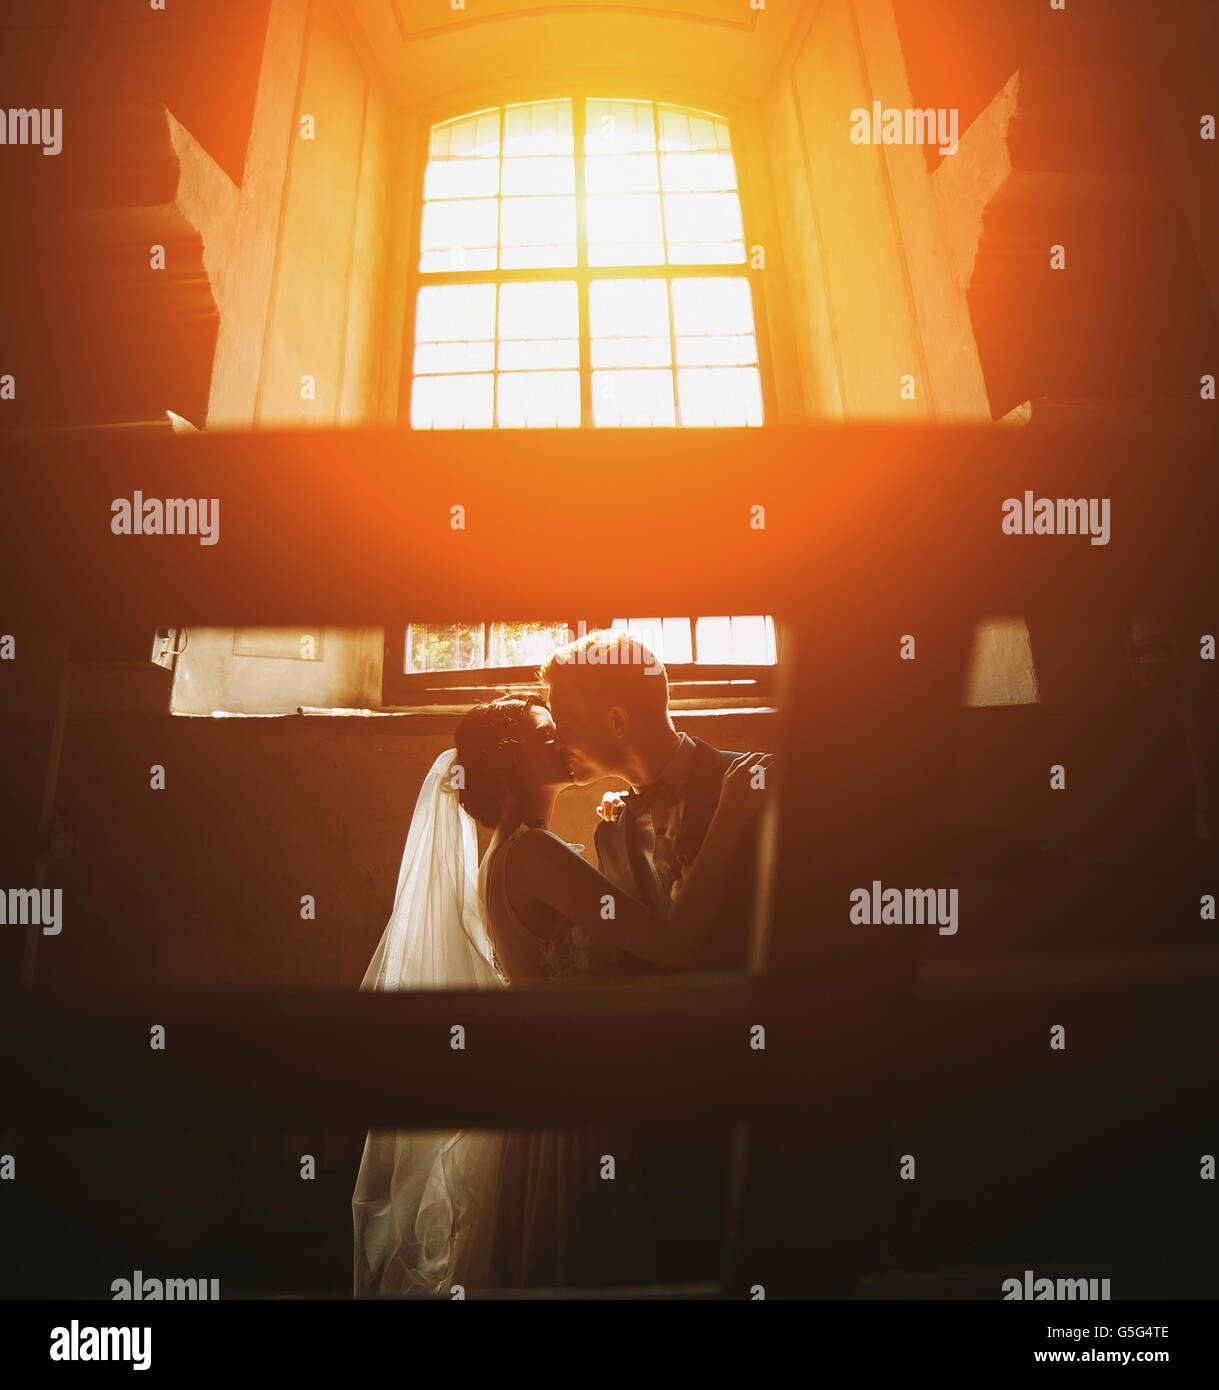 bride and groom on the background of a window. Stock Photo